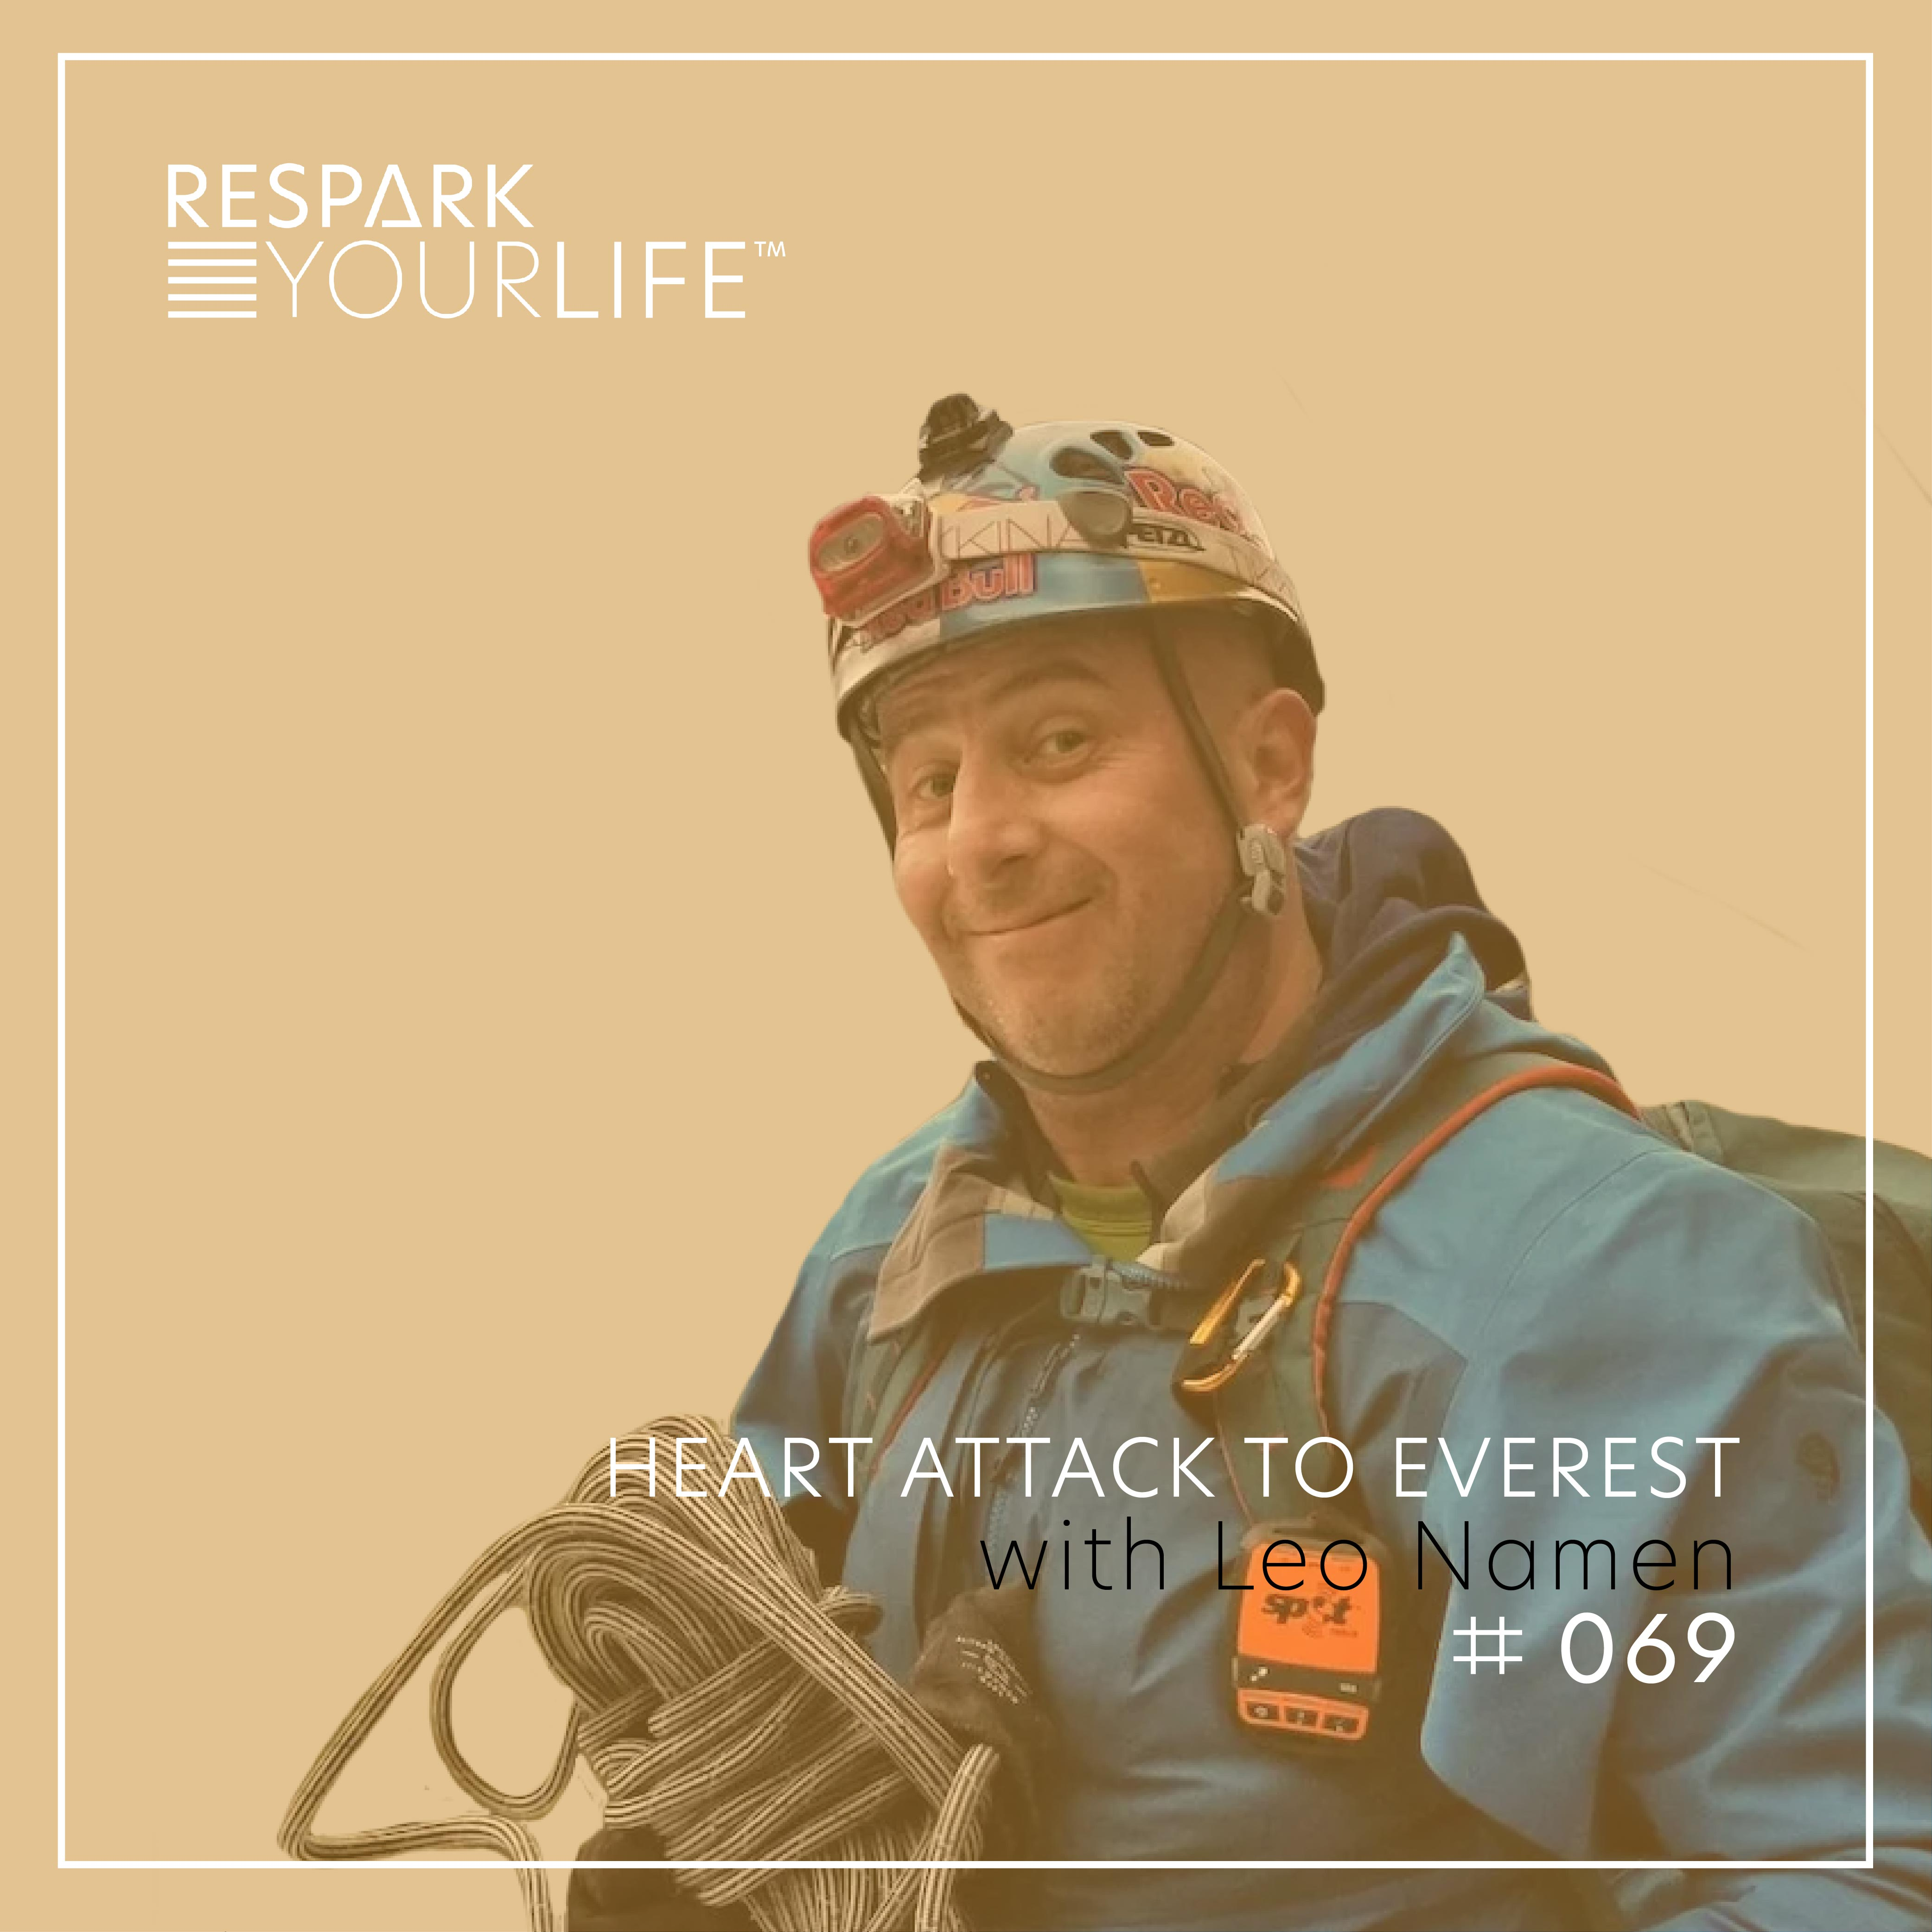 Heart Attack to Everest with Leo Namen